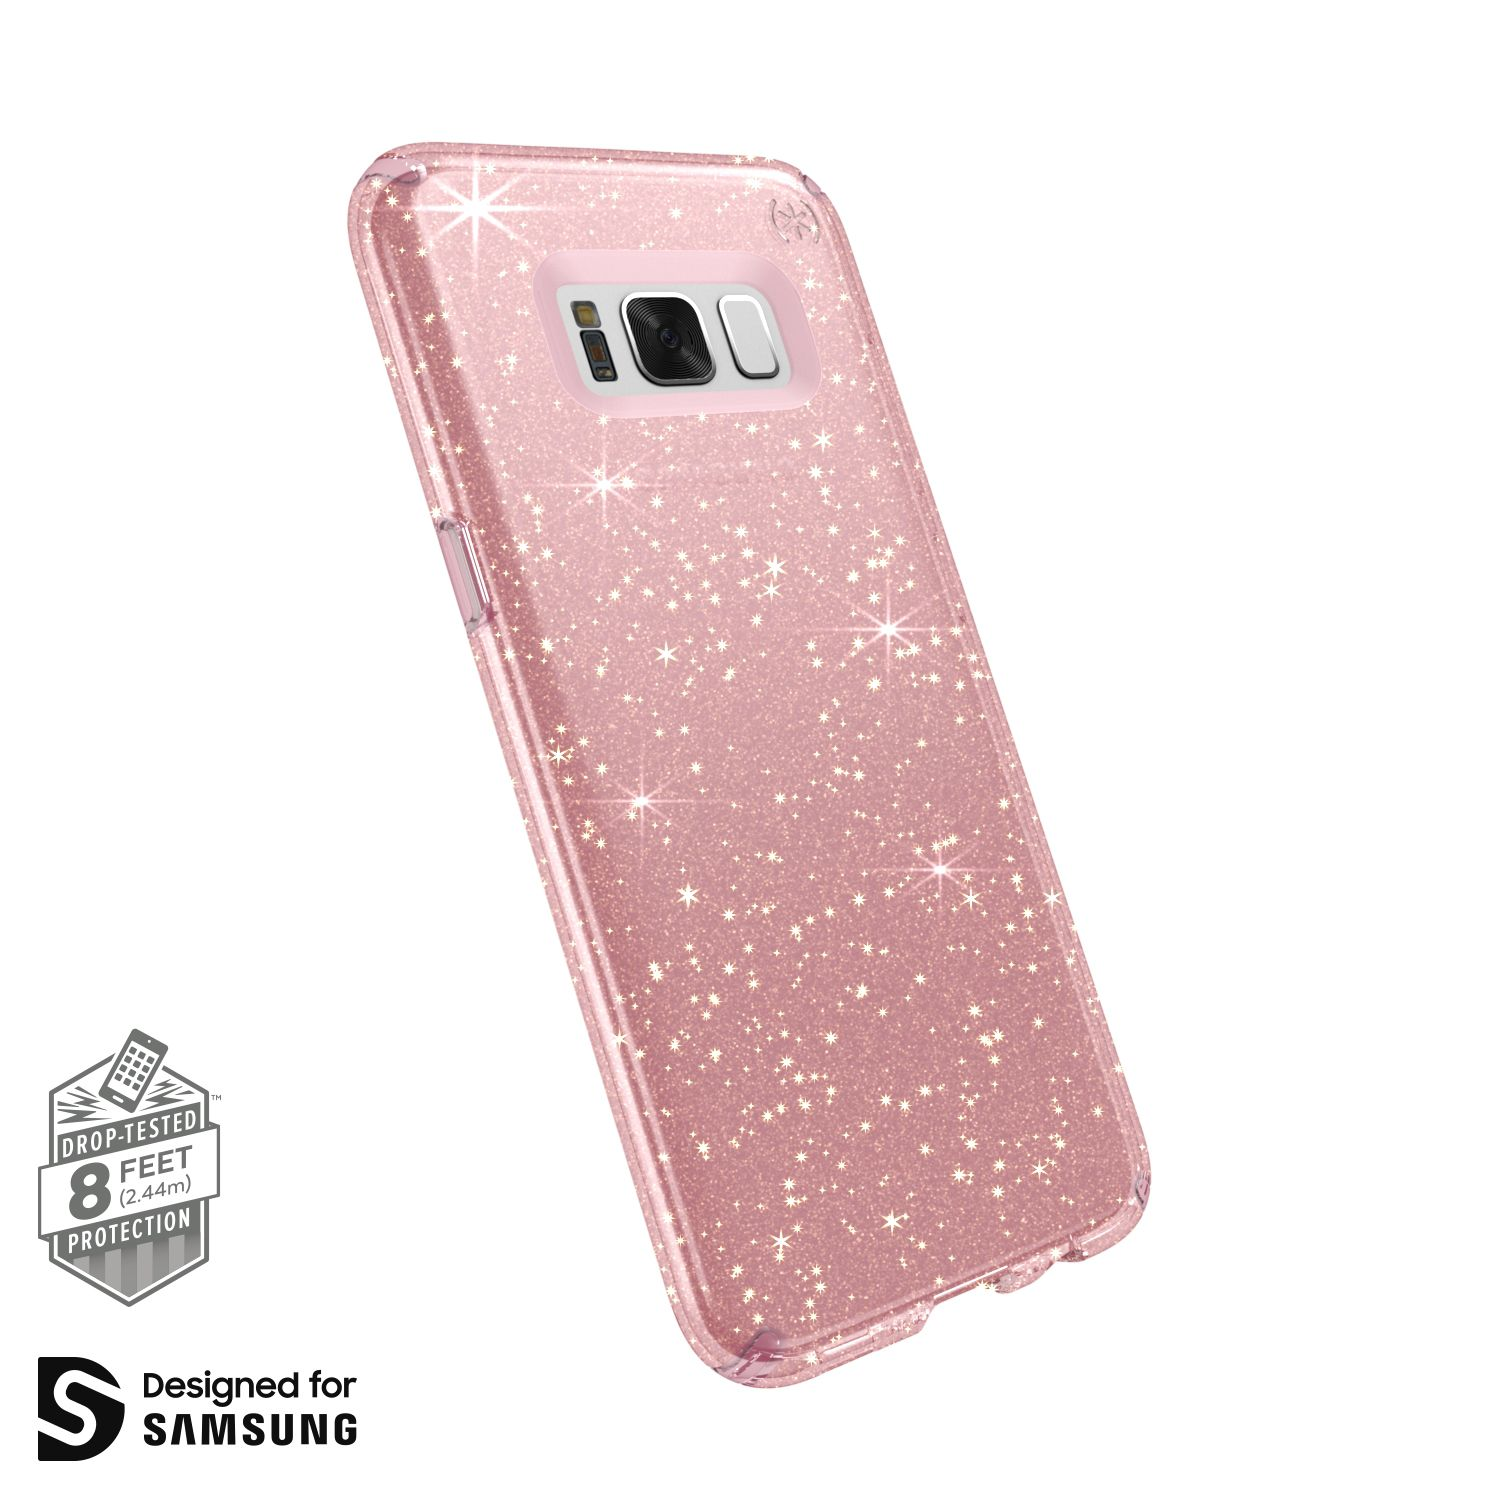 samsung s8 phone case rose pink